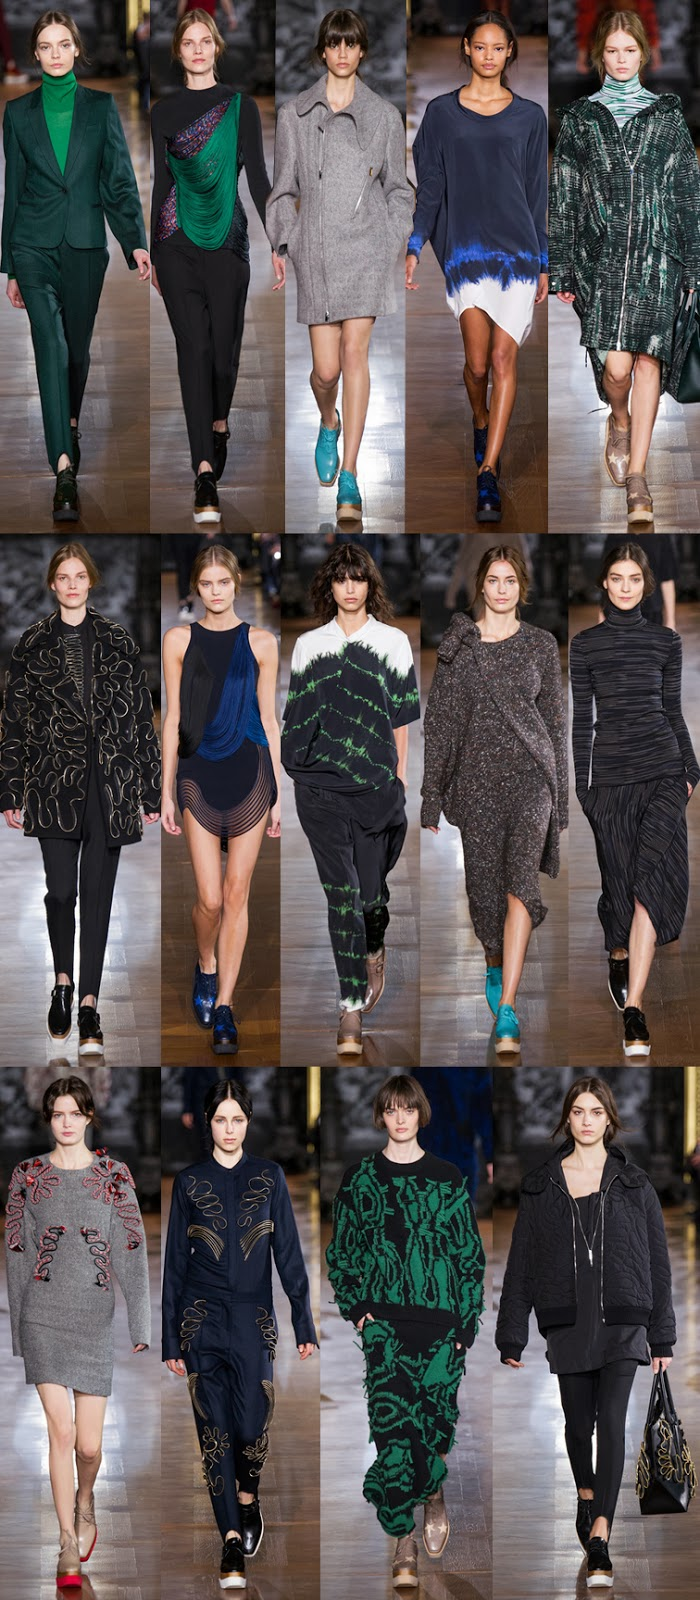 Stella McCartney fall winter 2014 runway collection, PFW, Paris fashion week, FW14, AW14